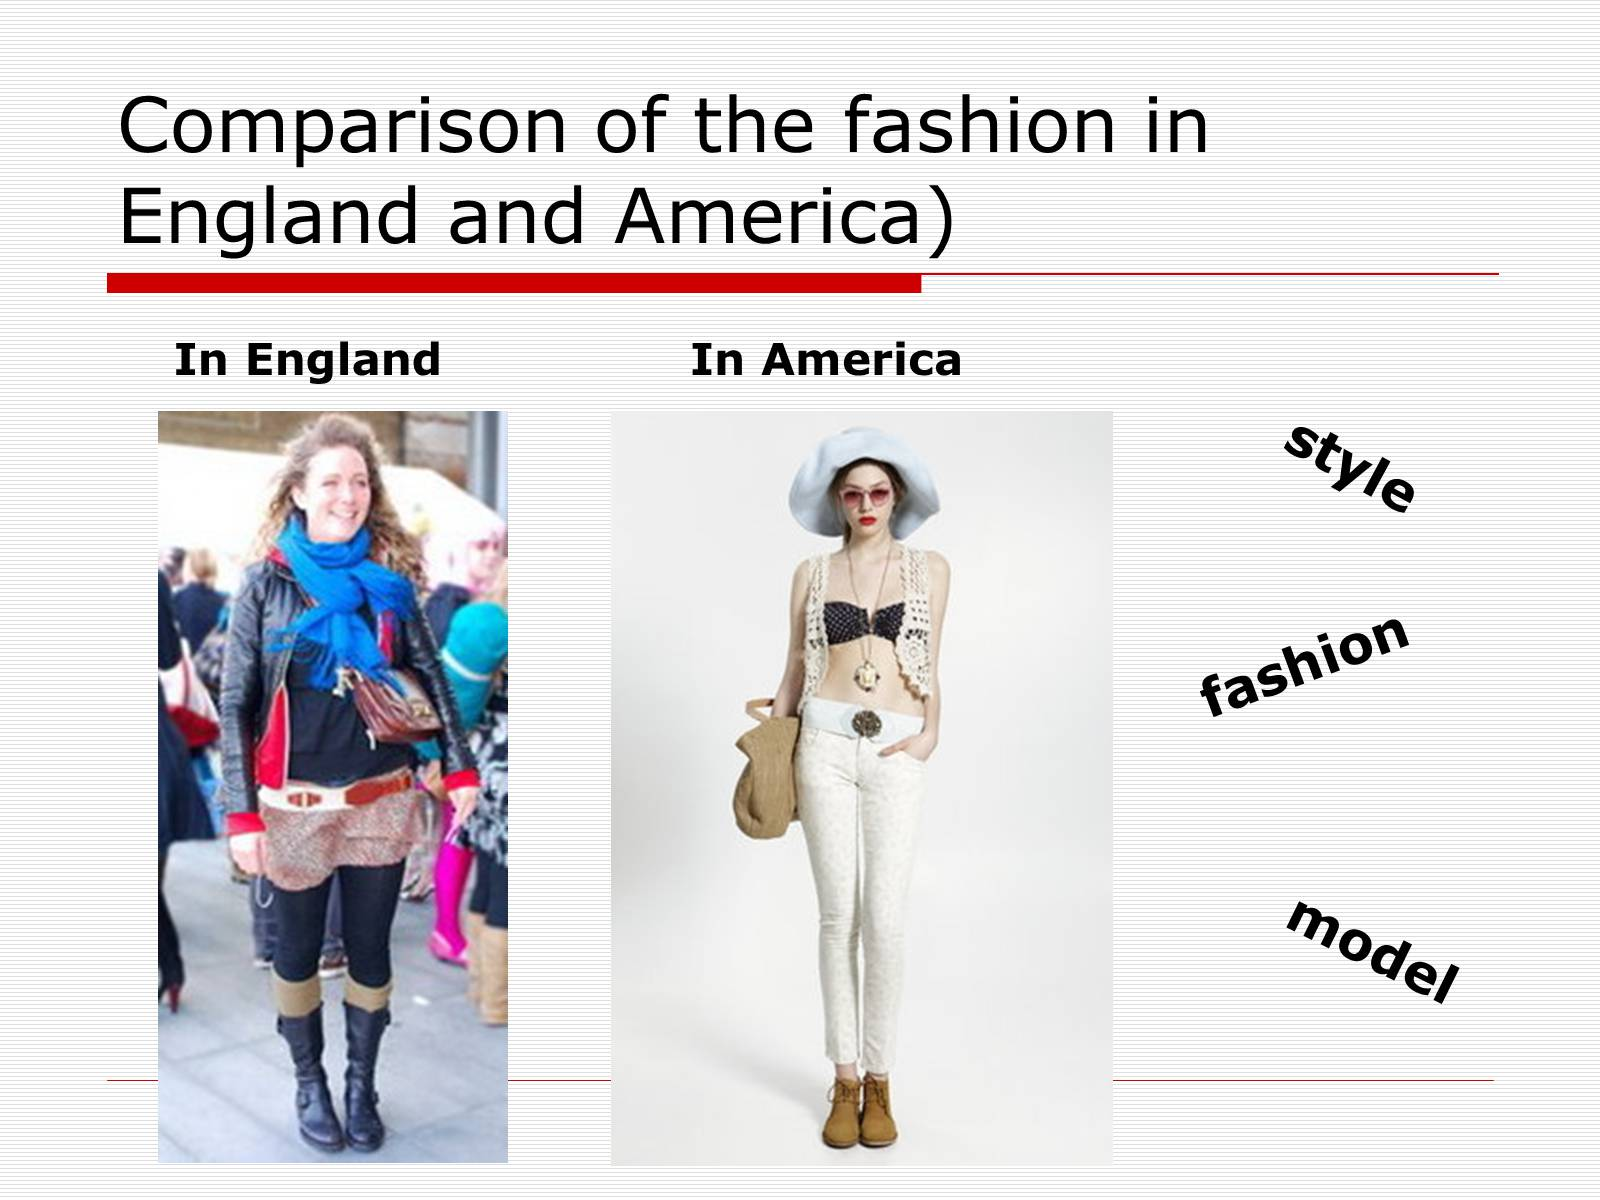 Презентація на тему «Comparison of the fashion in England and America» - Слайд #32